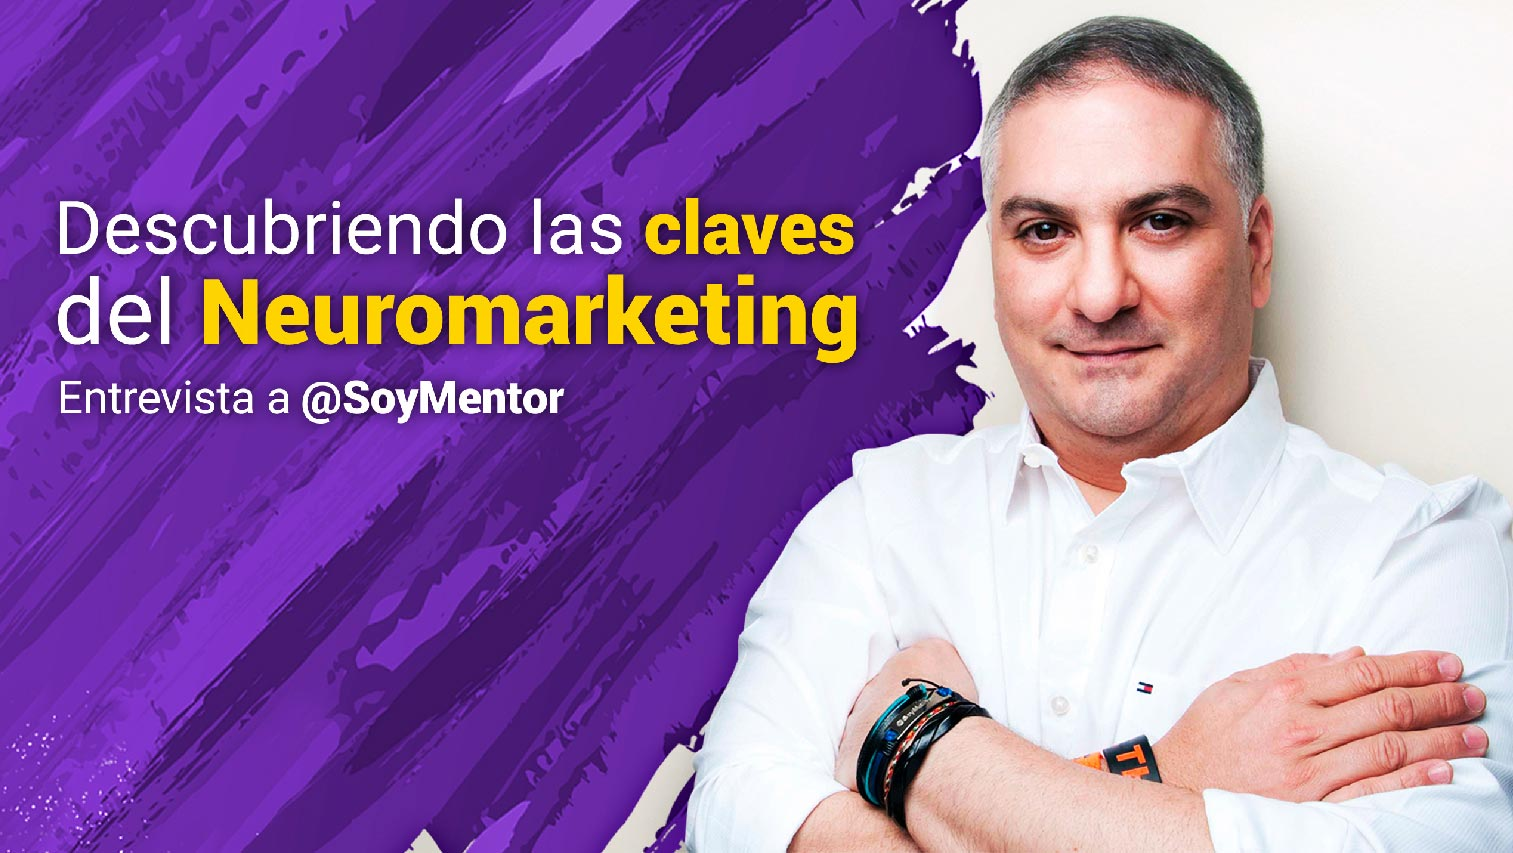 aplica-neuromarketing-en-tus-redes-venezuela-marketing--digital-zuliatec